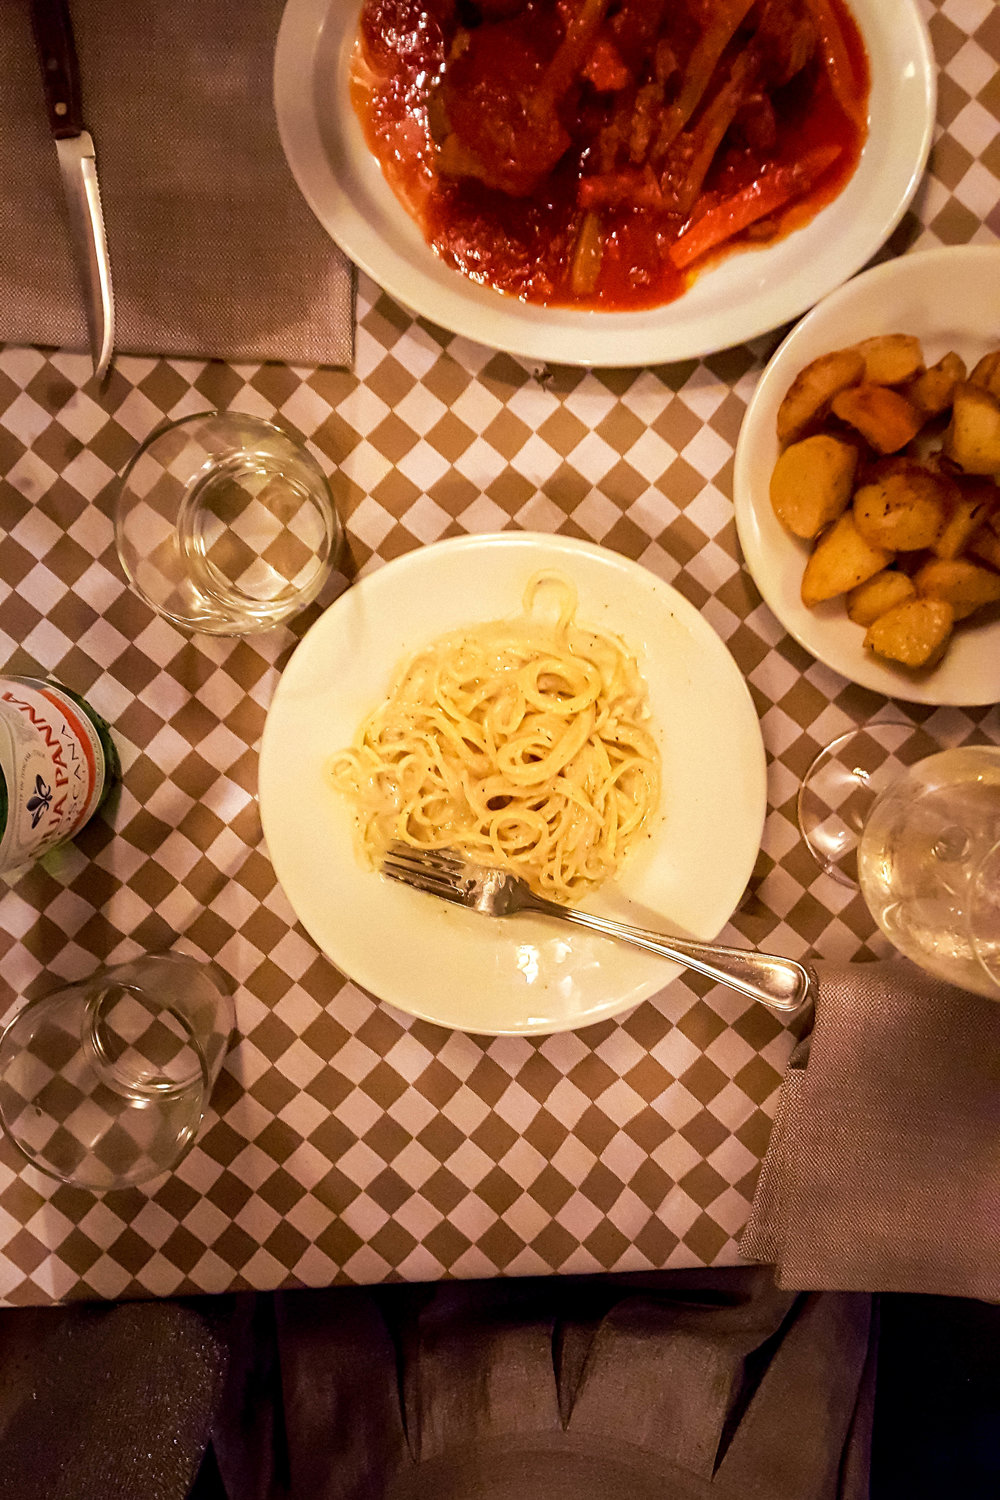 Dinner at Ristorante Matricianella, Rome